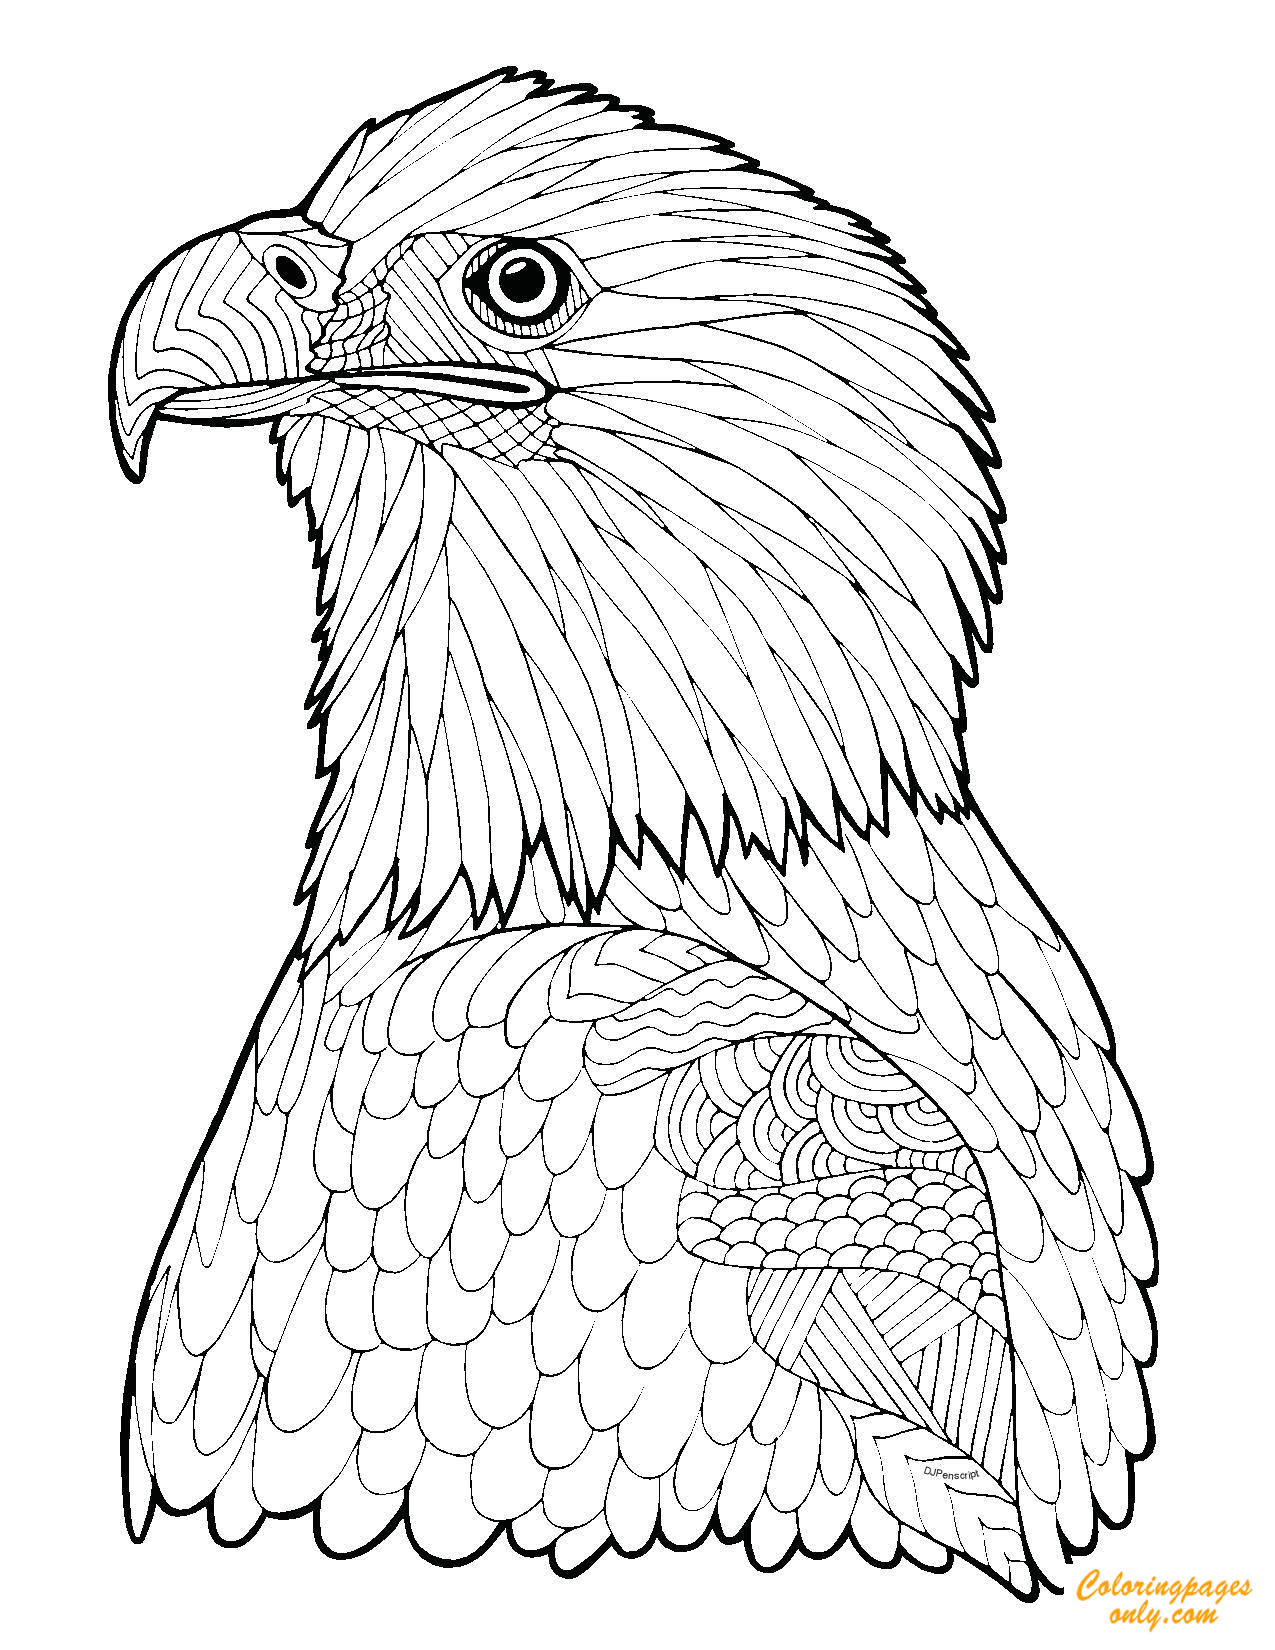 - Zentangle Eagle Coloring Page - Free Coloring Pages Online